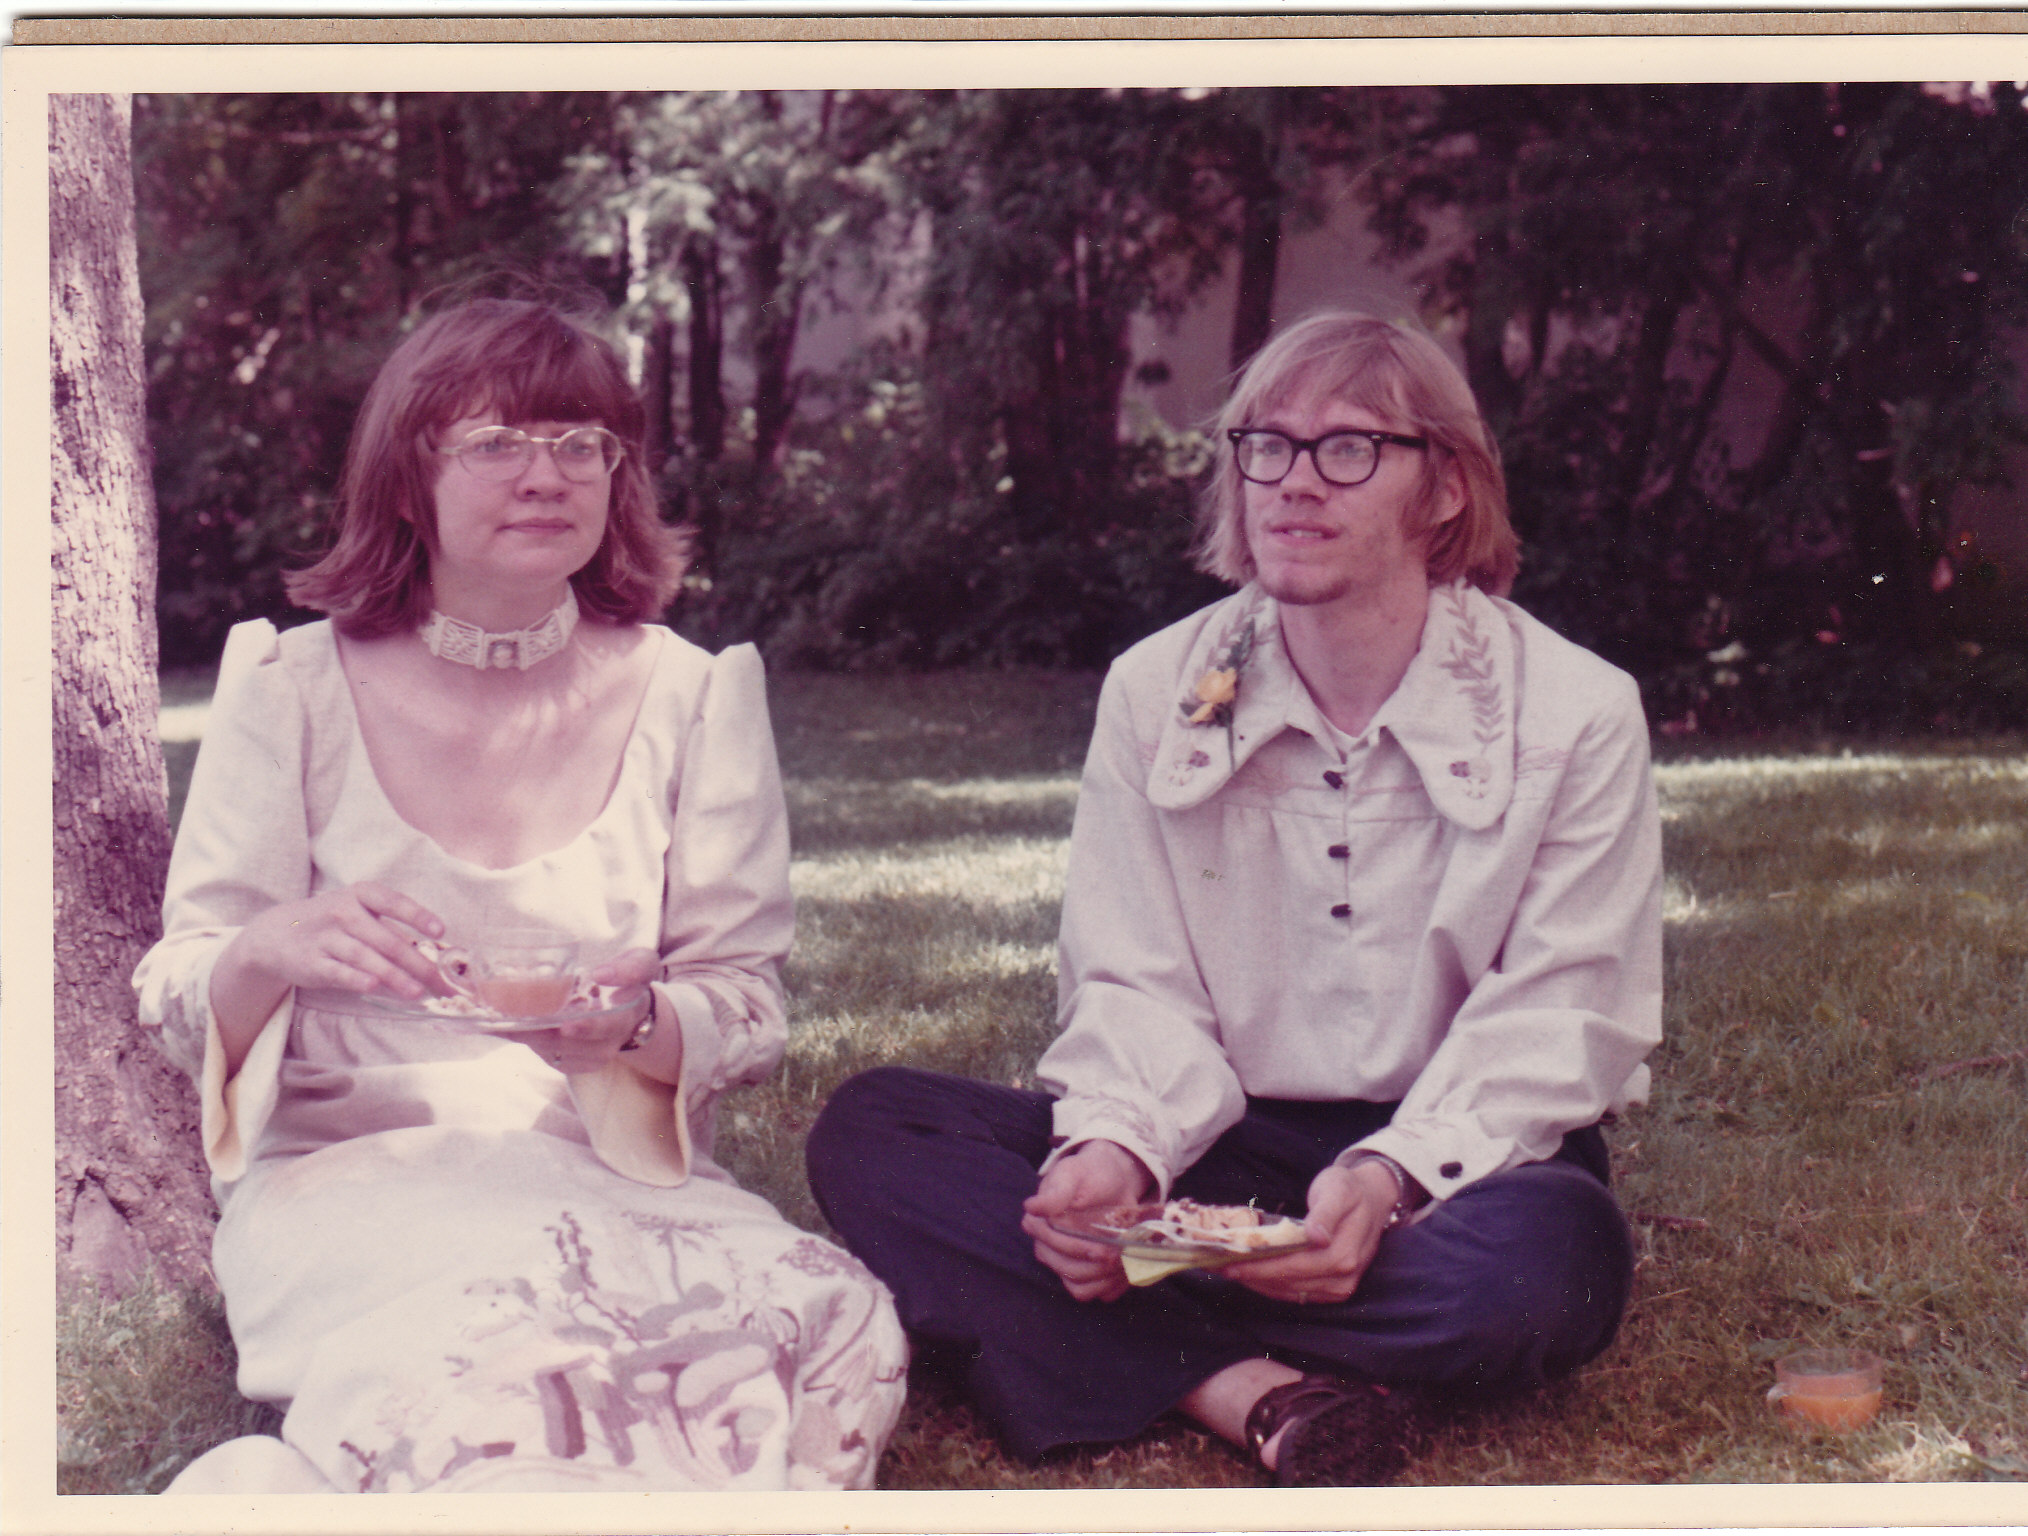 Wedding Day, June 8, 1973, Carleton College